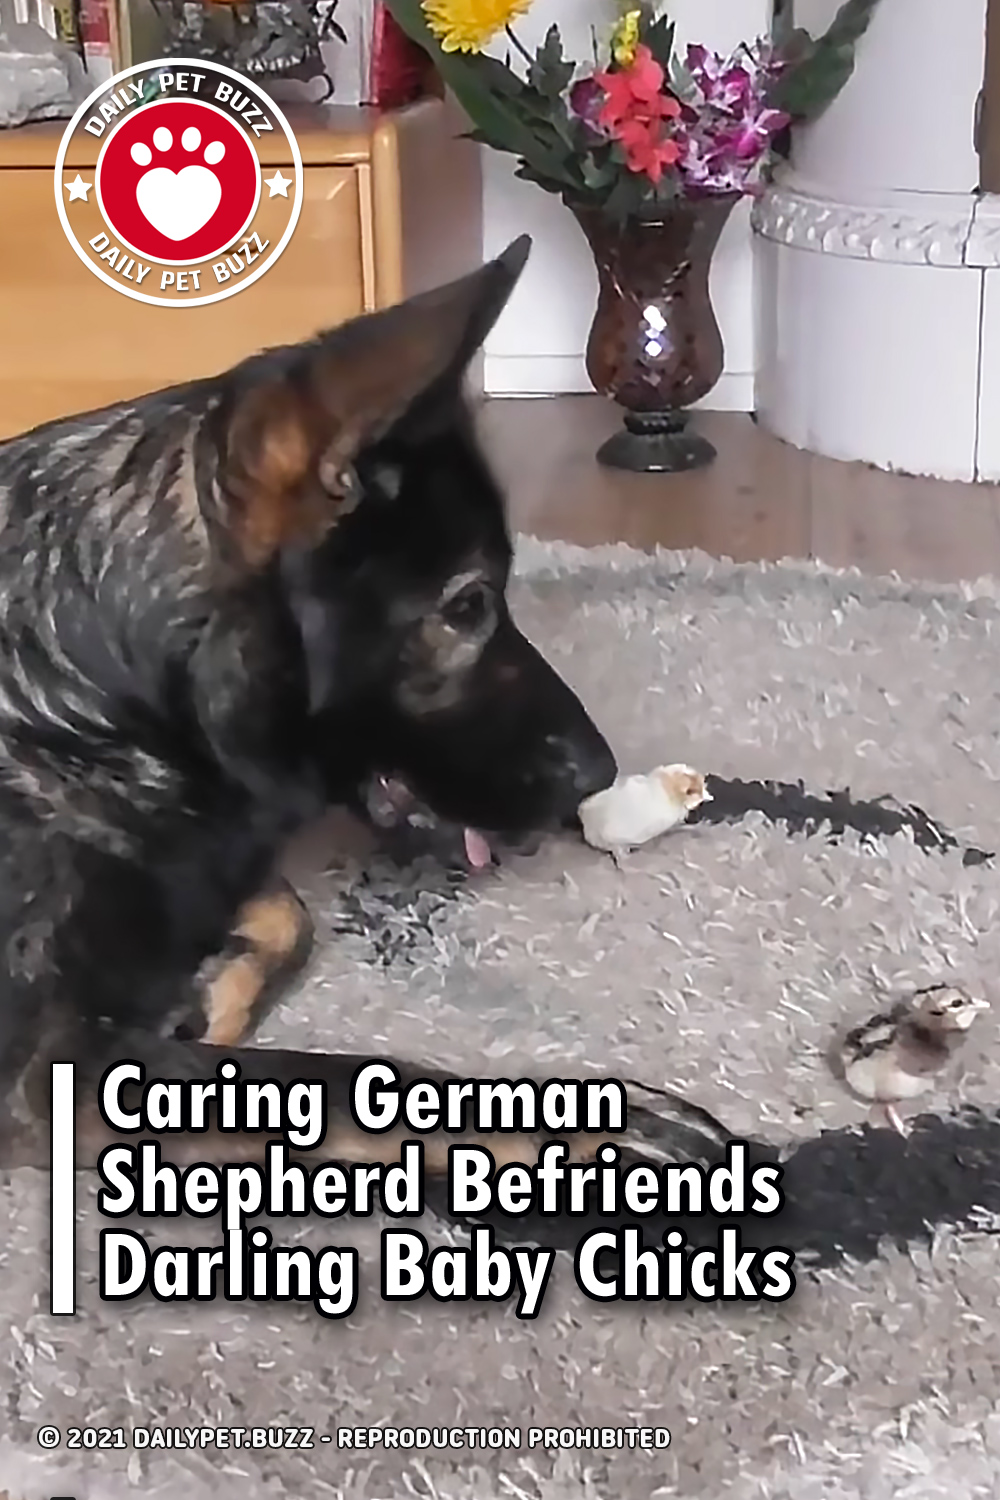 Caring German Shepherd Befriends Darling Baby Chicks